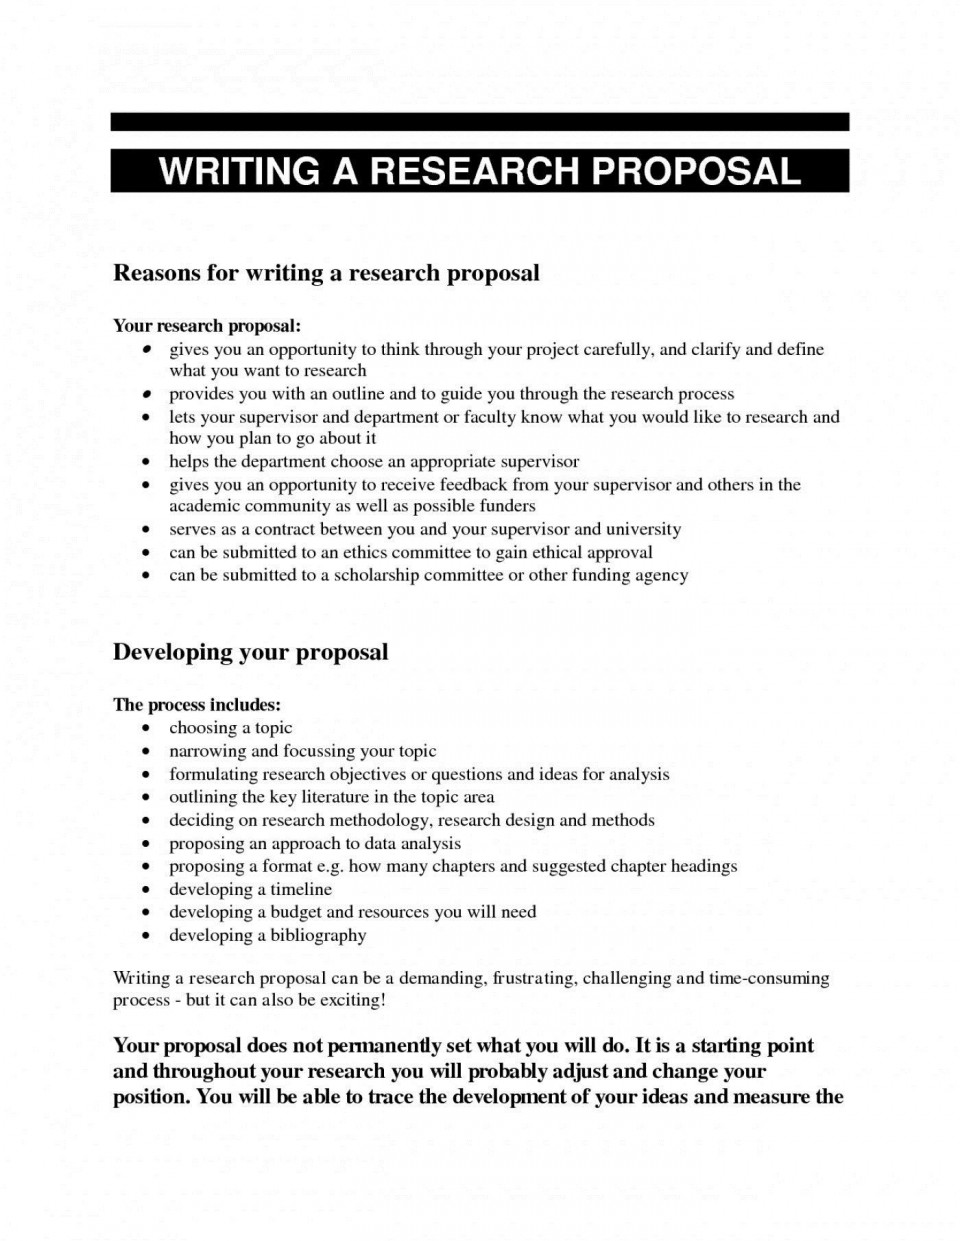 005 Impressive Research Paper Proposal Example Chicago Sample 960